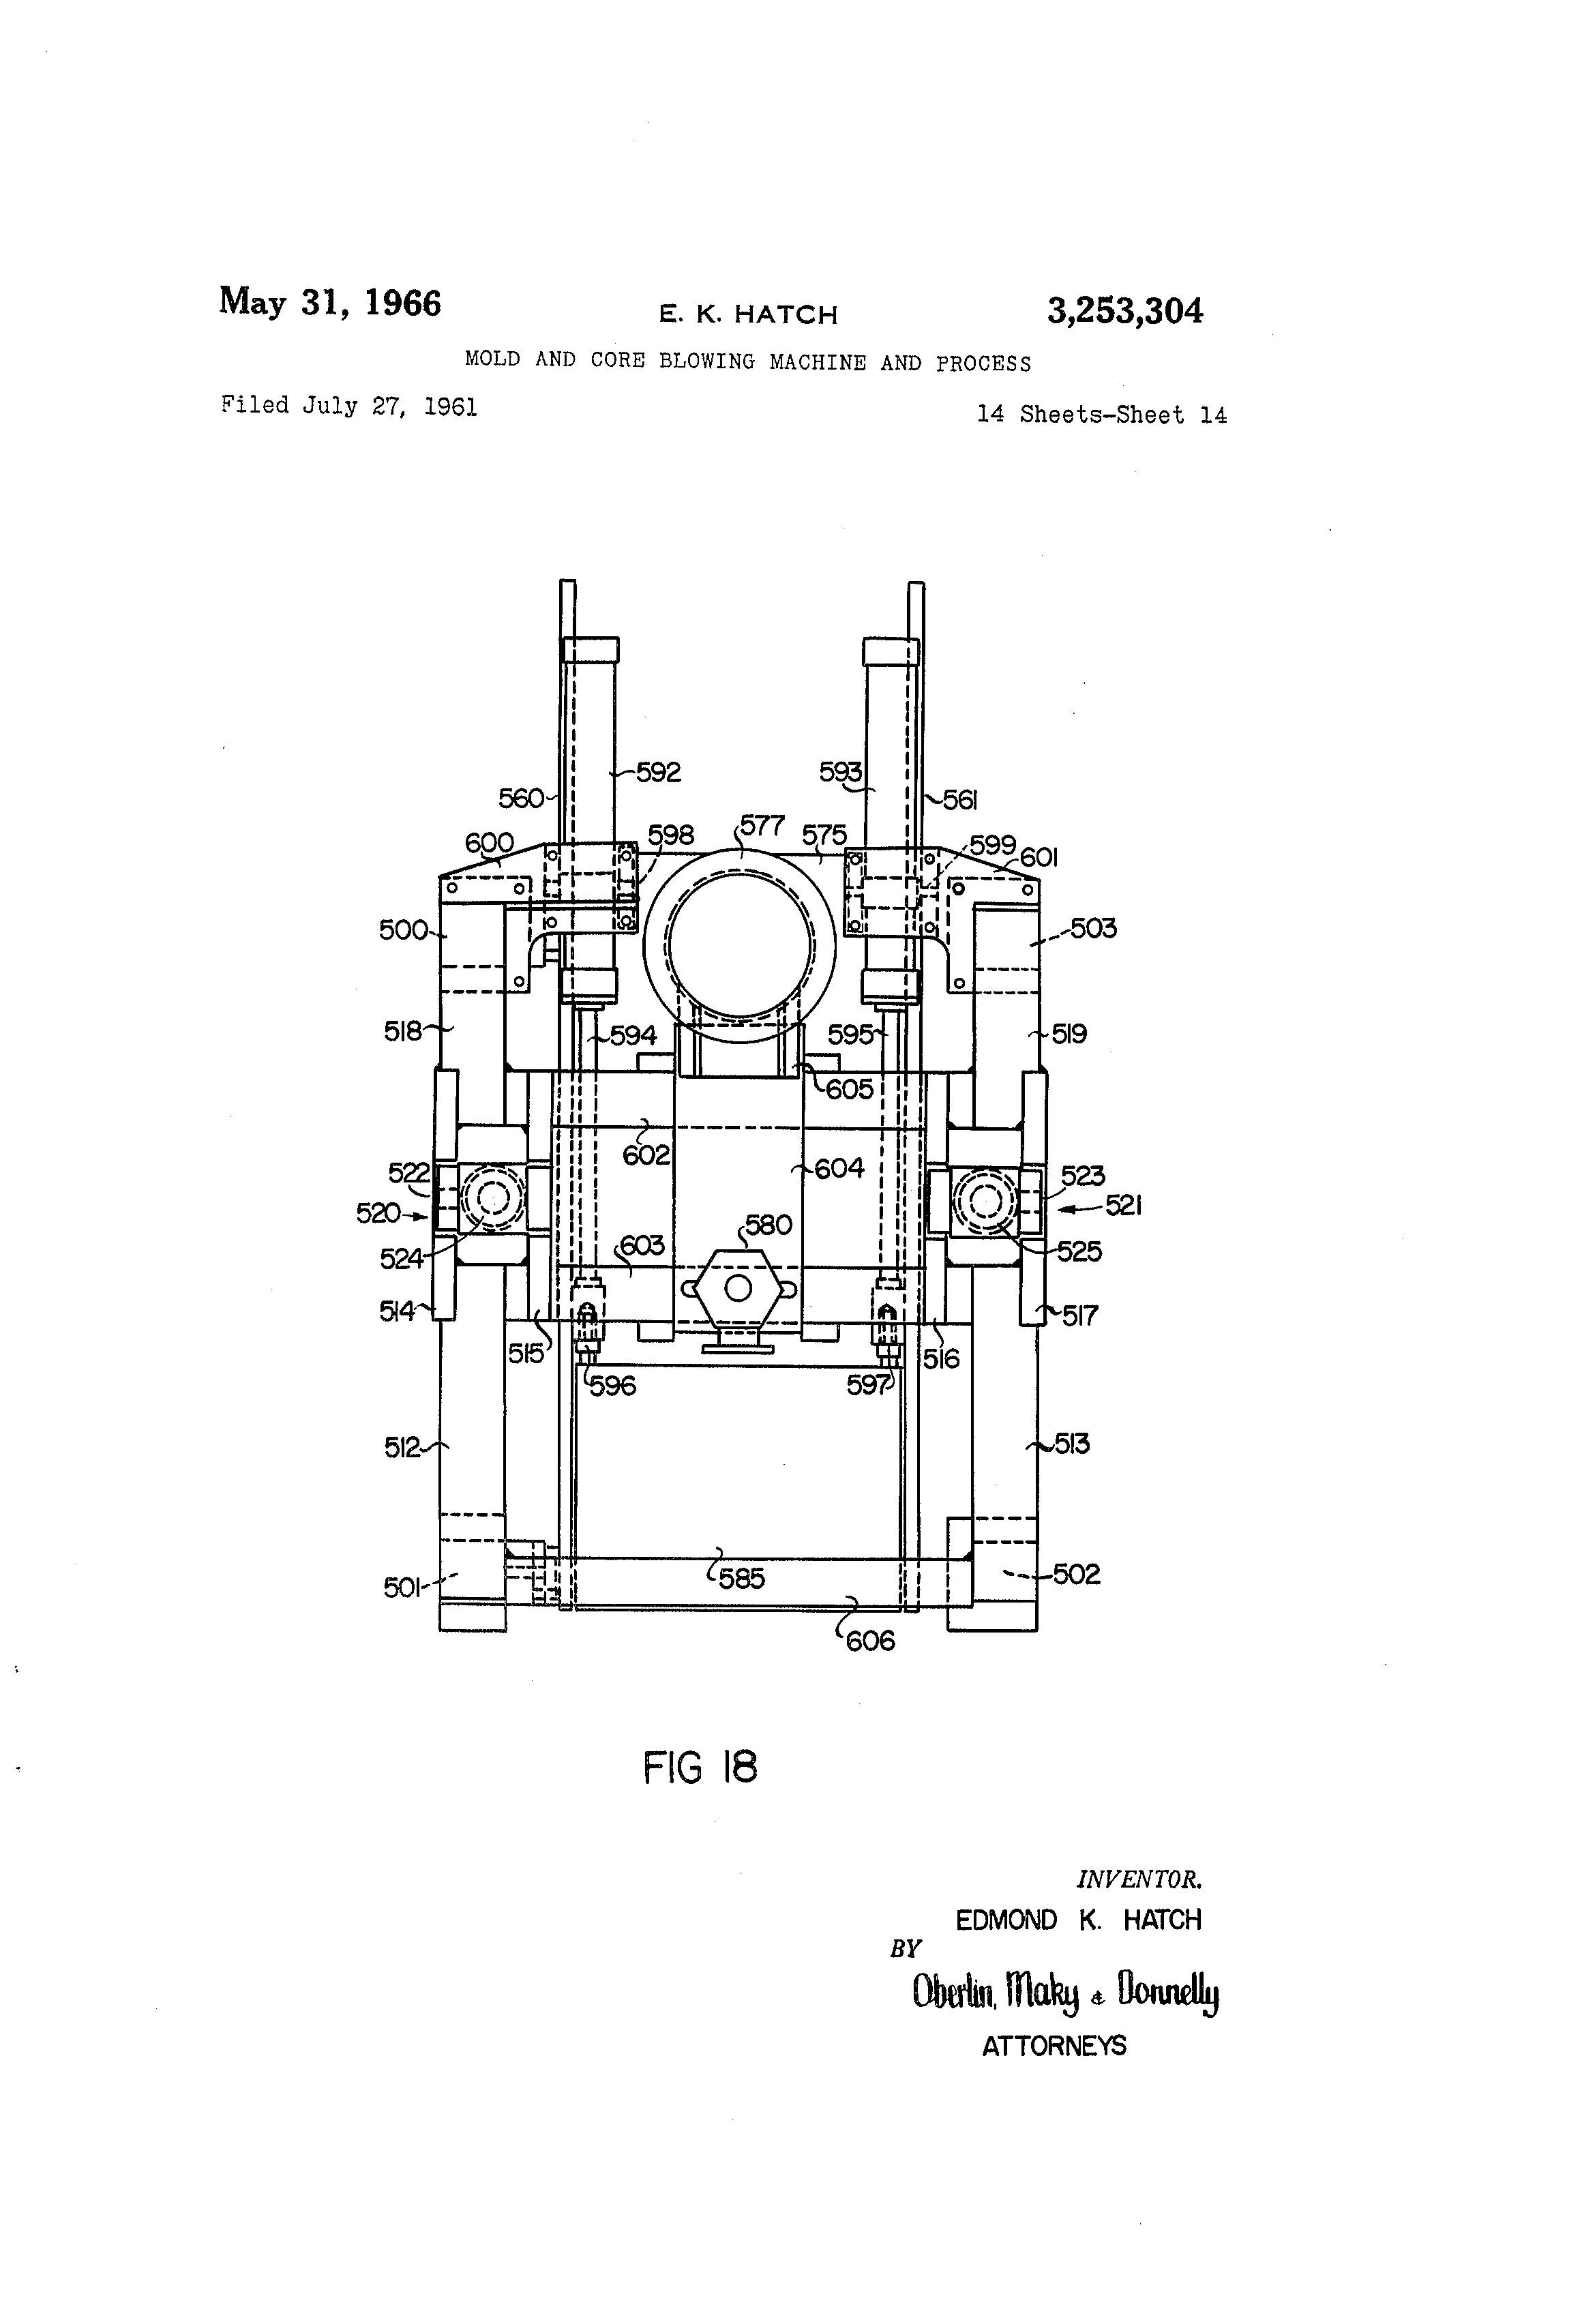 US3253304 13 patent us3253304 mold and core blowing machine and process  at crackthecode.co